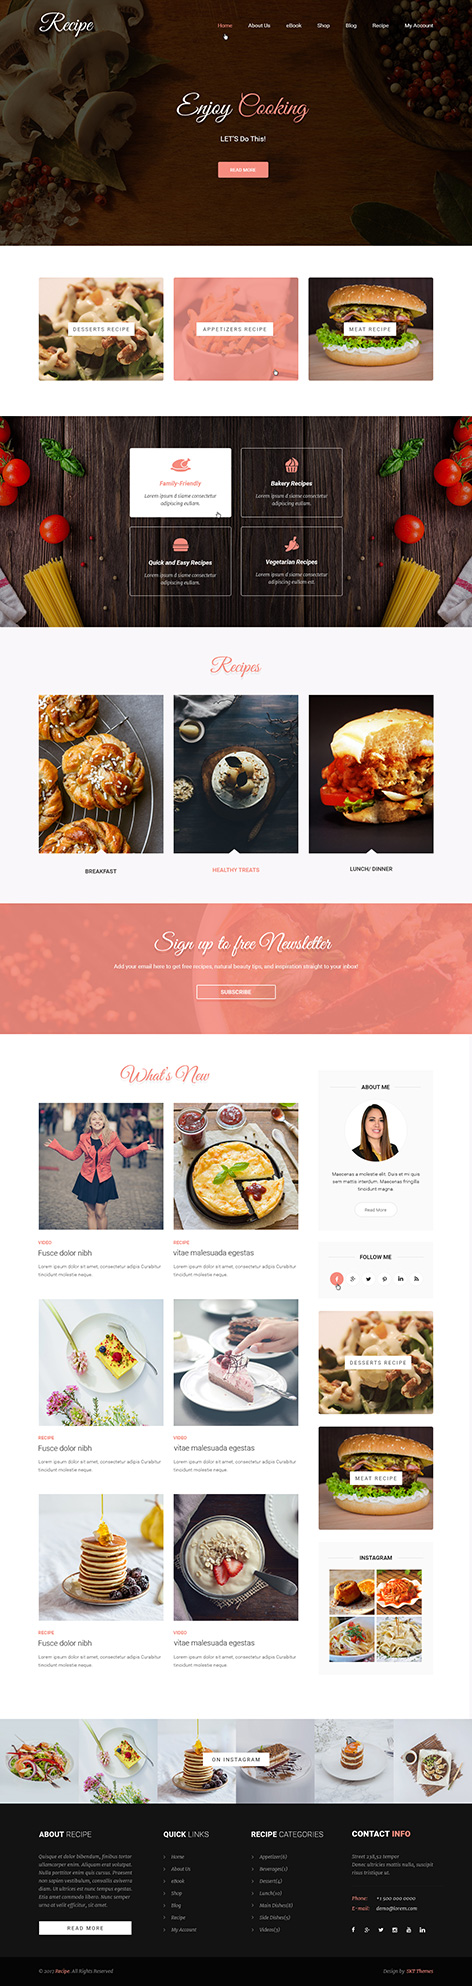 khana khazana WordPress theme